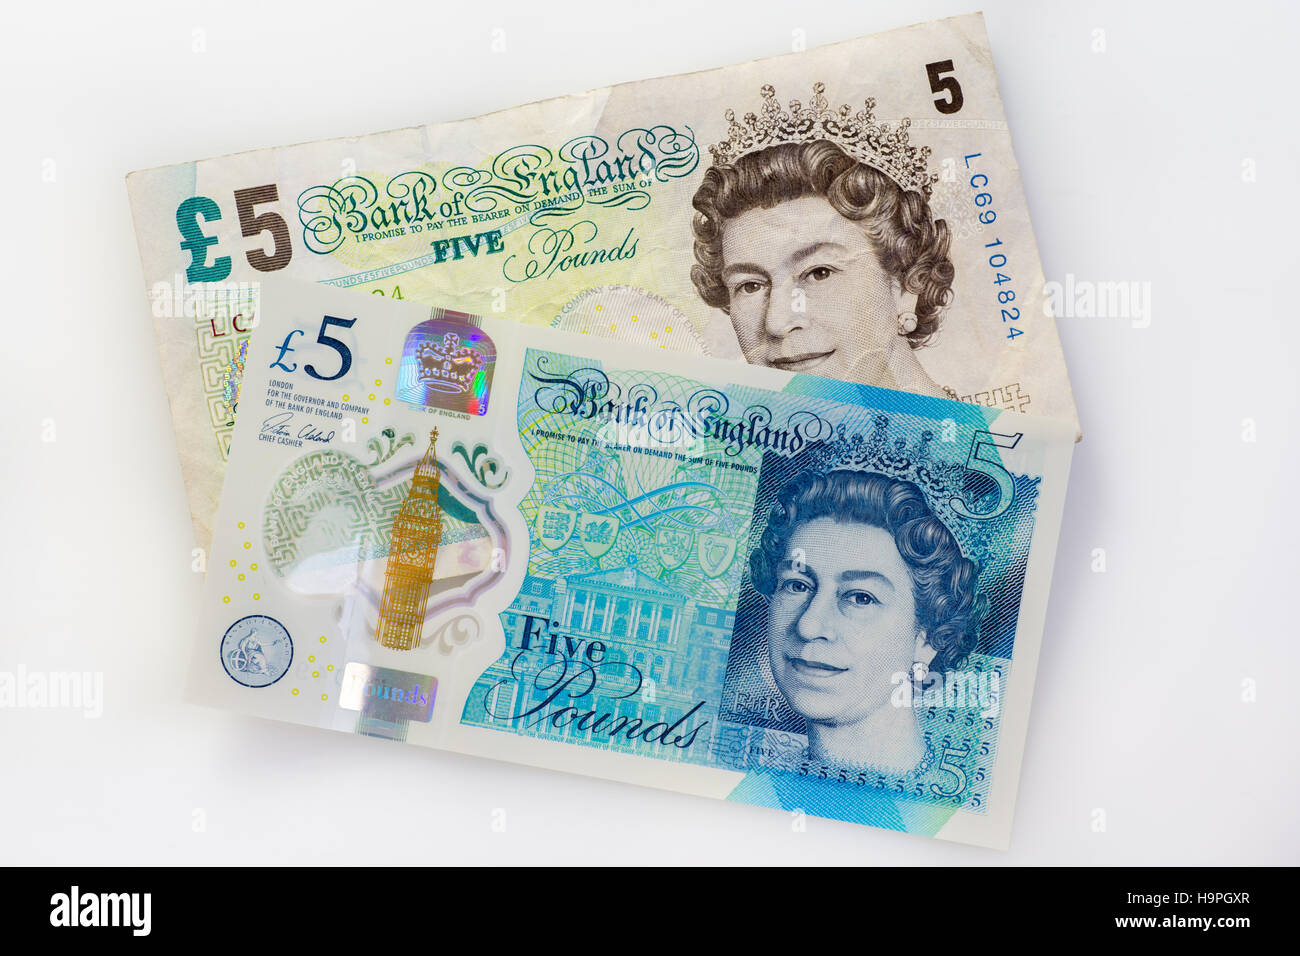 New 2016 British five pound note and old paper note together - Stock Image